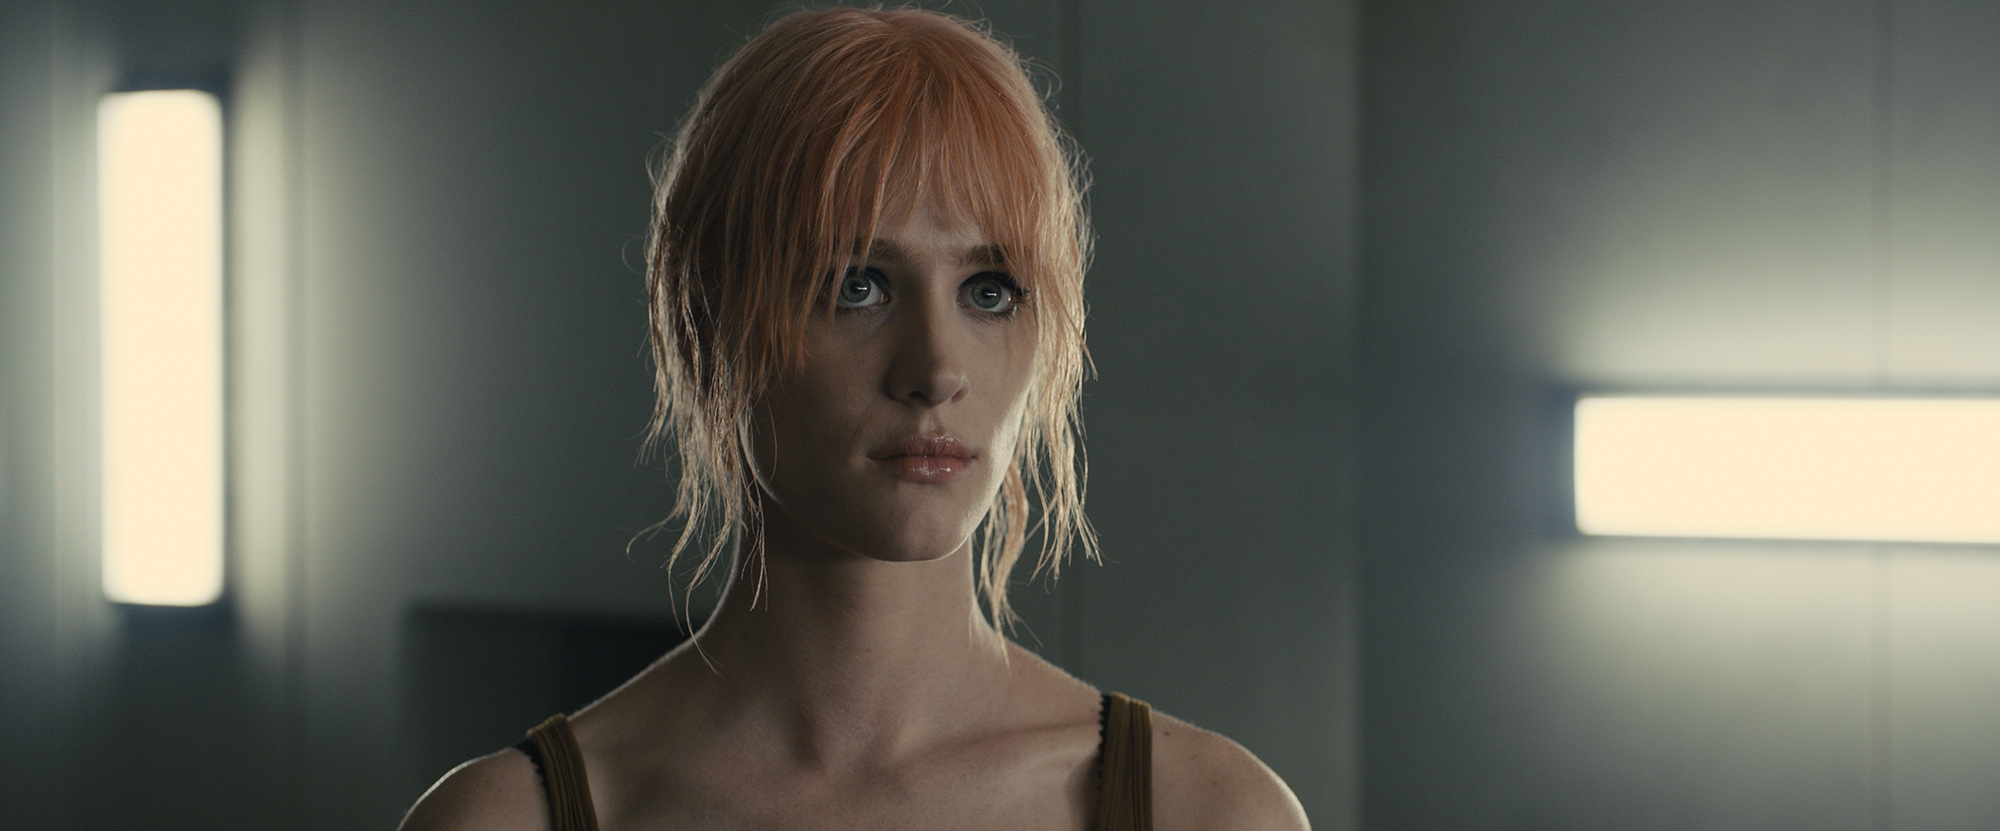 Actress Mackenzie Davis playing Mariette in Blade Runner 2049 (©2017 ALCON ENTERTAINMENT, LLC., WARNER BROS. ENTERTAINMENT INC. AND COLUMBIA TRISTAR MARKETING GROUP, INC. ALL RIGHTS RESERVED.)